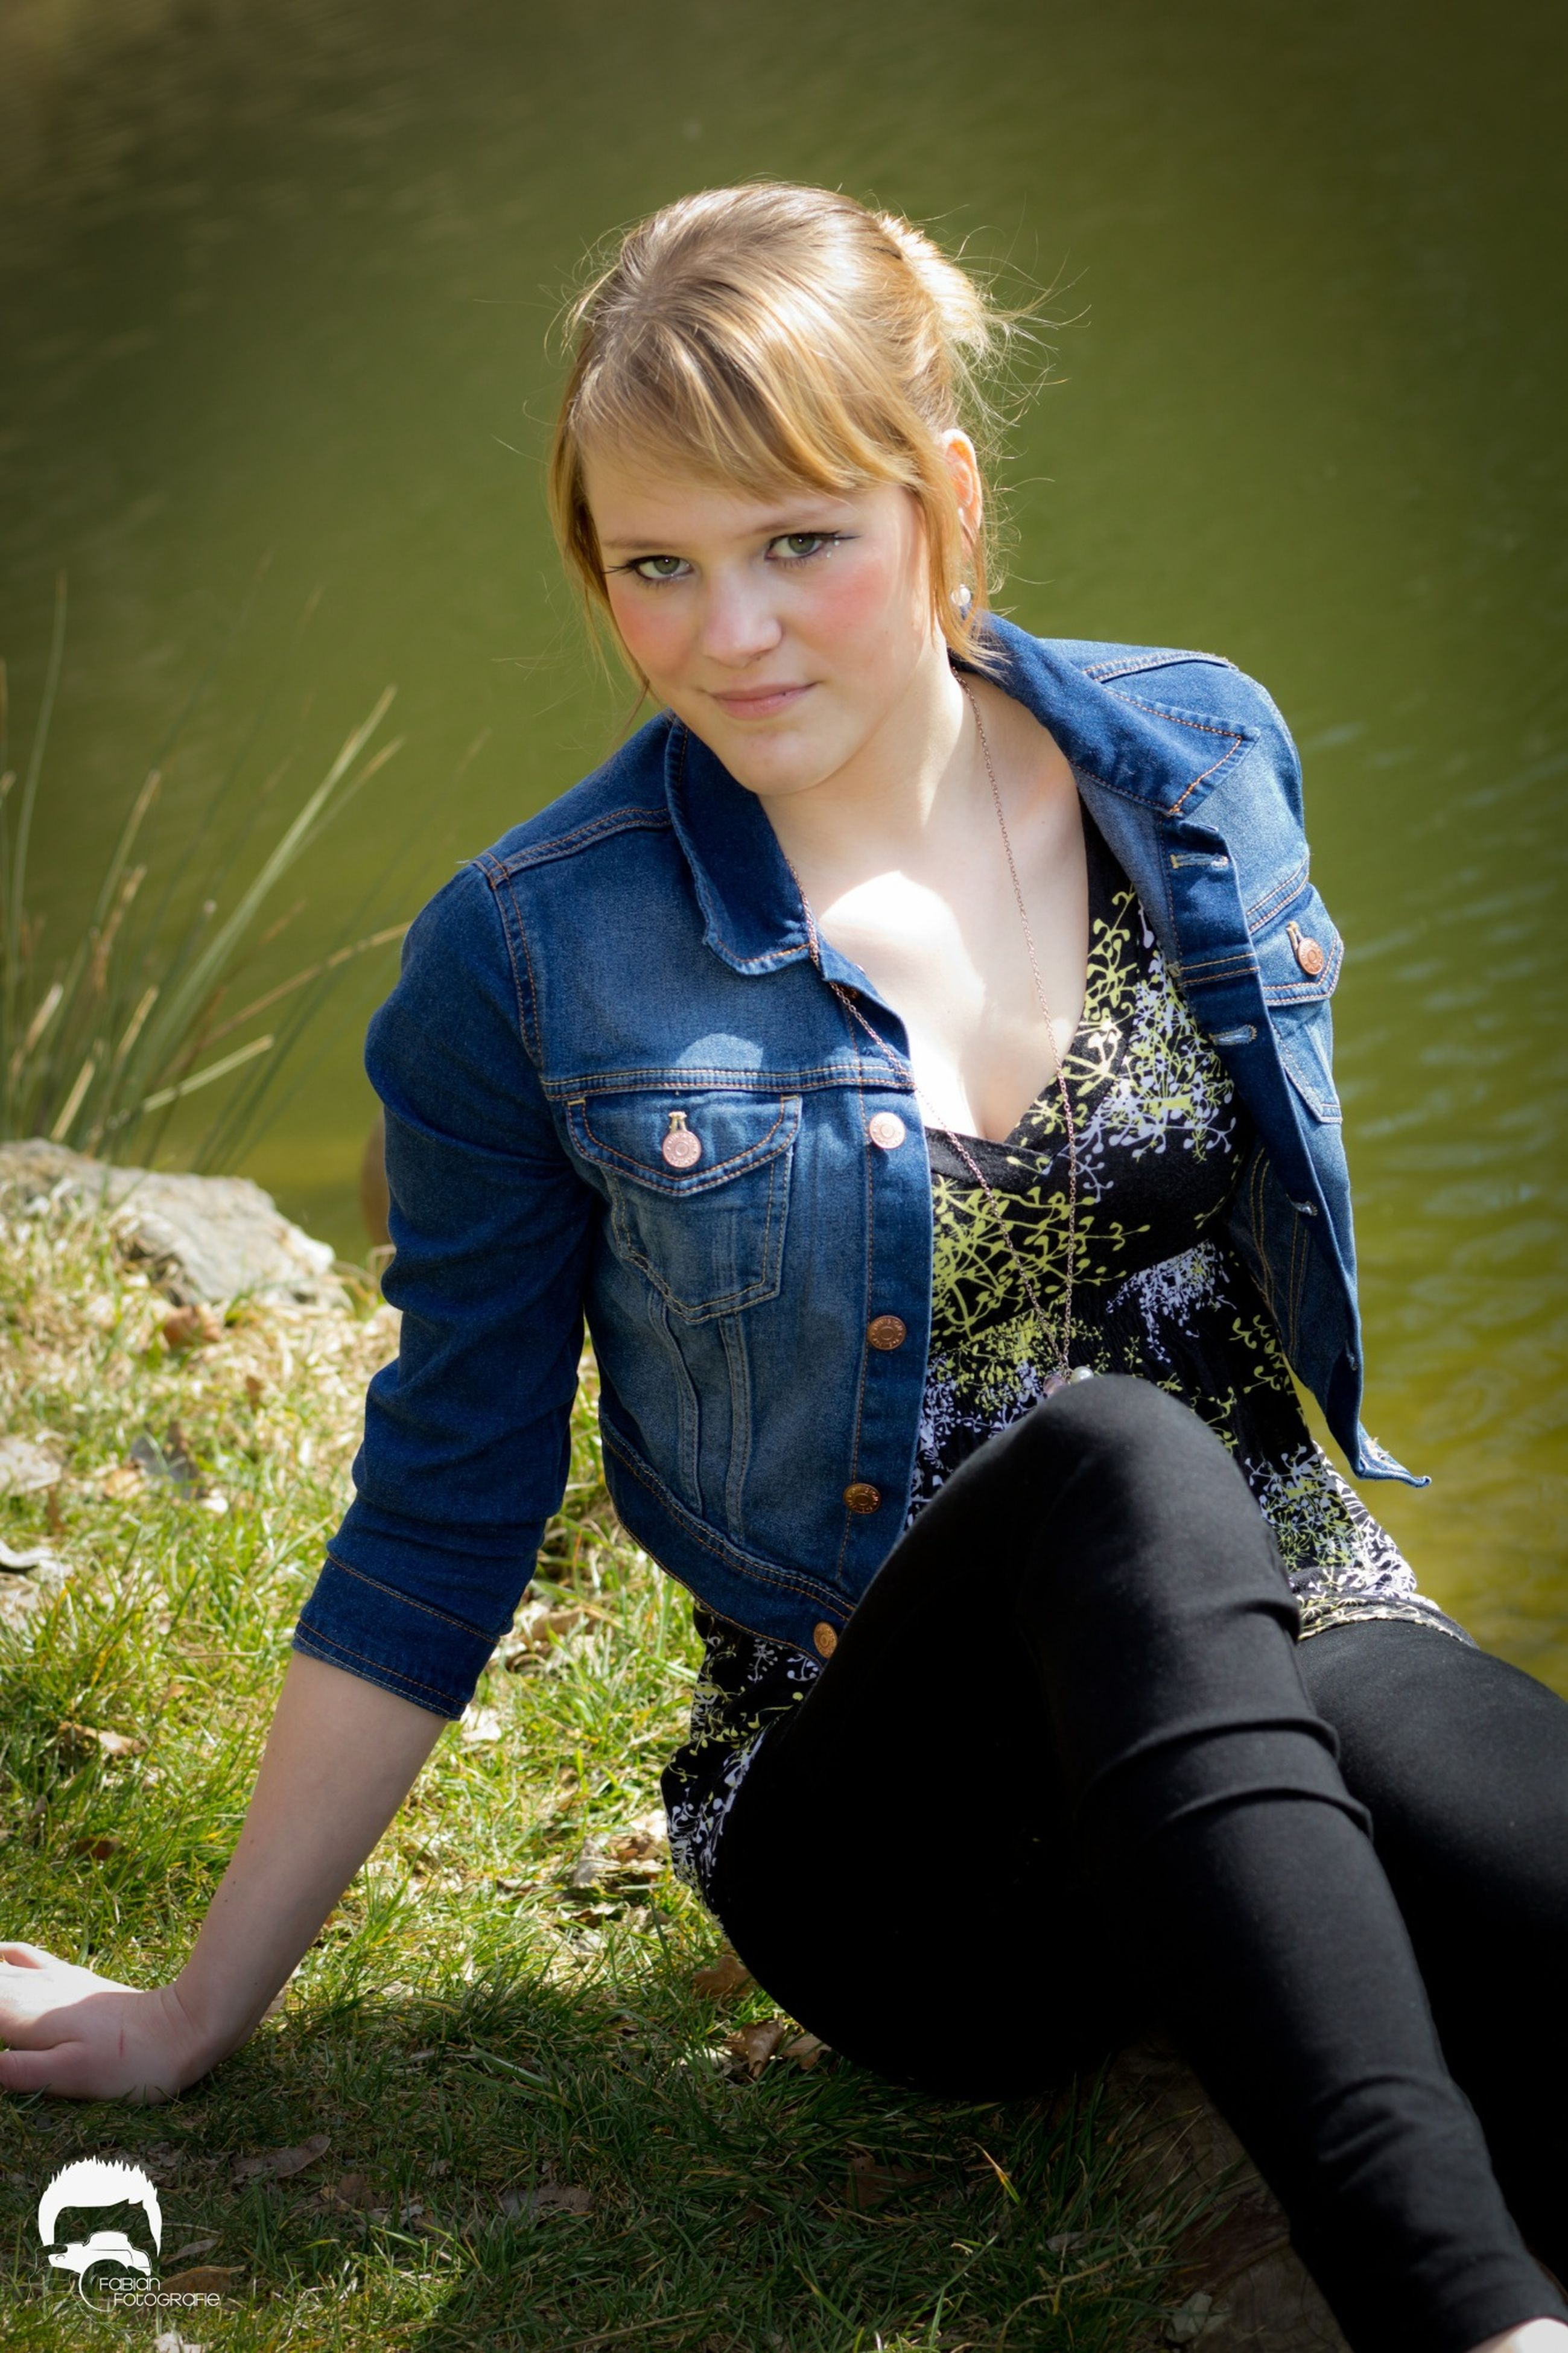 person, lifestyles, casual clothing, leisure activity, young adult, portrait, three quarter length, looking at camera, sitting, water, smiling, standing, front view, lake, happiness, young women, outdoors, full length